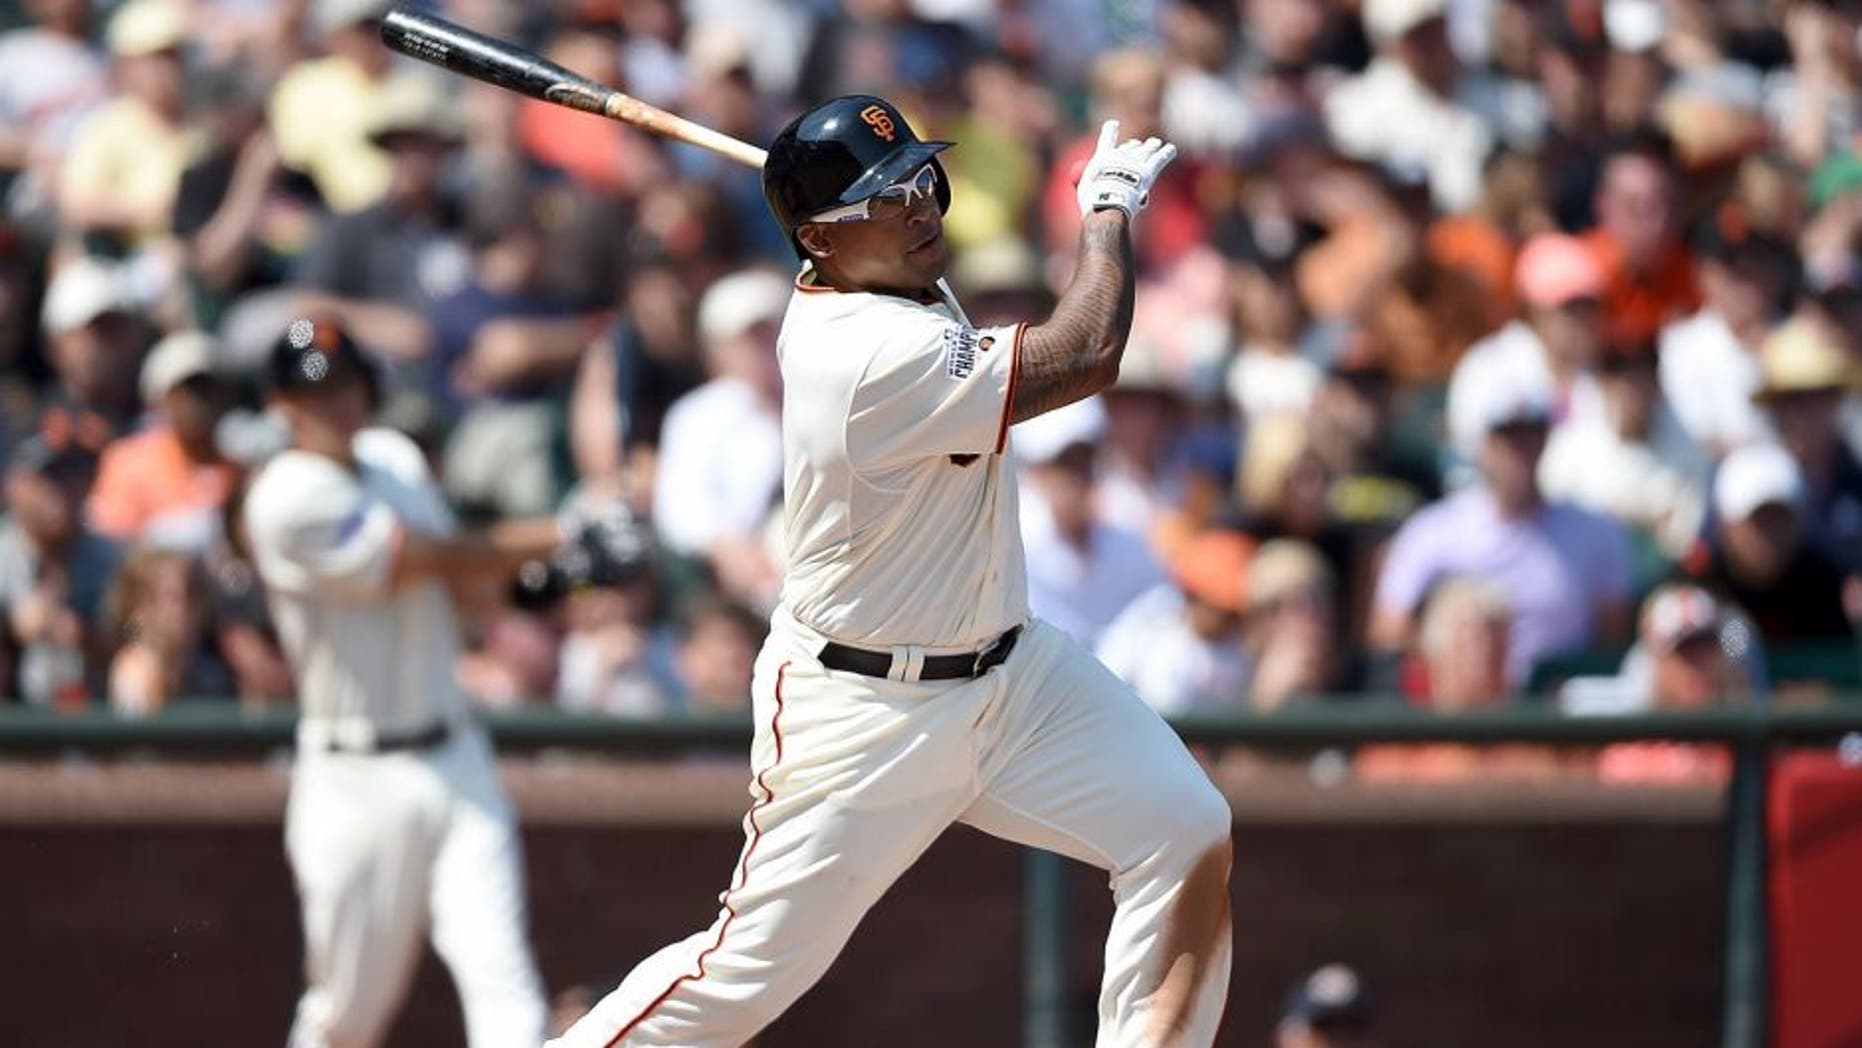 SAN FRANCISCO, CA - AUGUST 30: Marlon Byrd #6 of the San Francisco Giants hits an rbi double scoring Brandon Belt #9 against the St. Louis Cardinals in the bottom of the six inning at AT&T Park on August 30, 2015 in San Francisco, California. (Photo by Thearon W. Henderson/Getty Images)